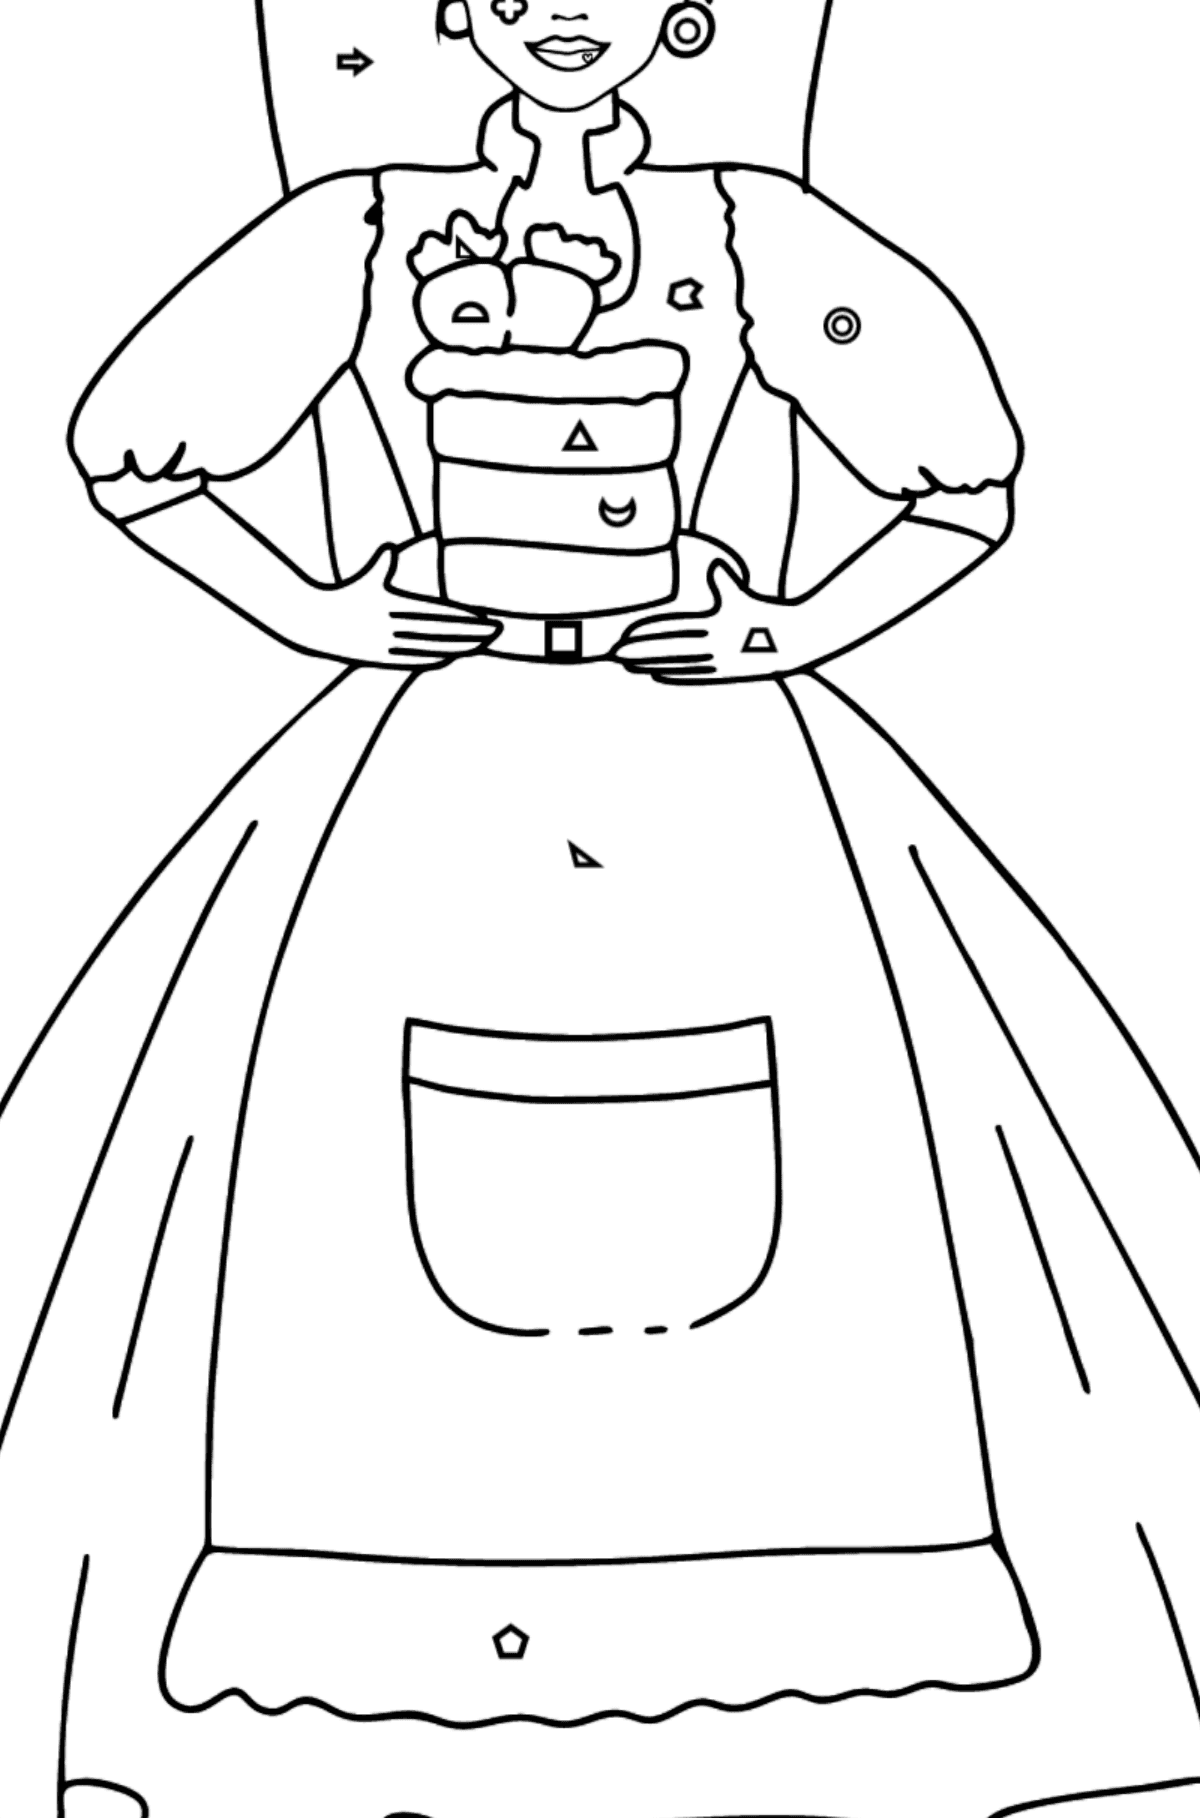 Barbie Doll and Cake coloring page - Coloring by Geometric Shapes for Kids